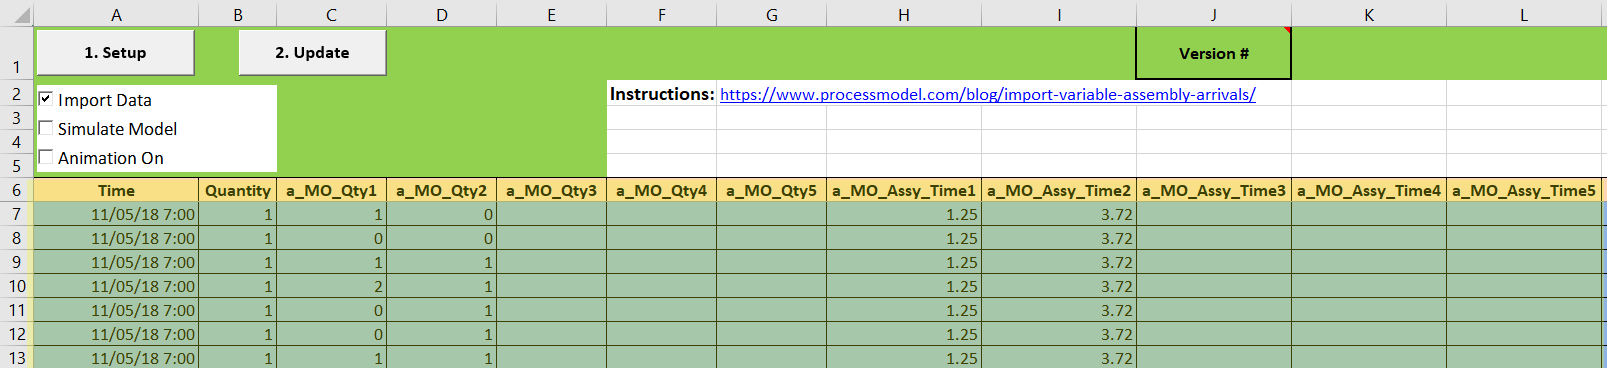 Import Variable Assembly Arrivals raw data